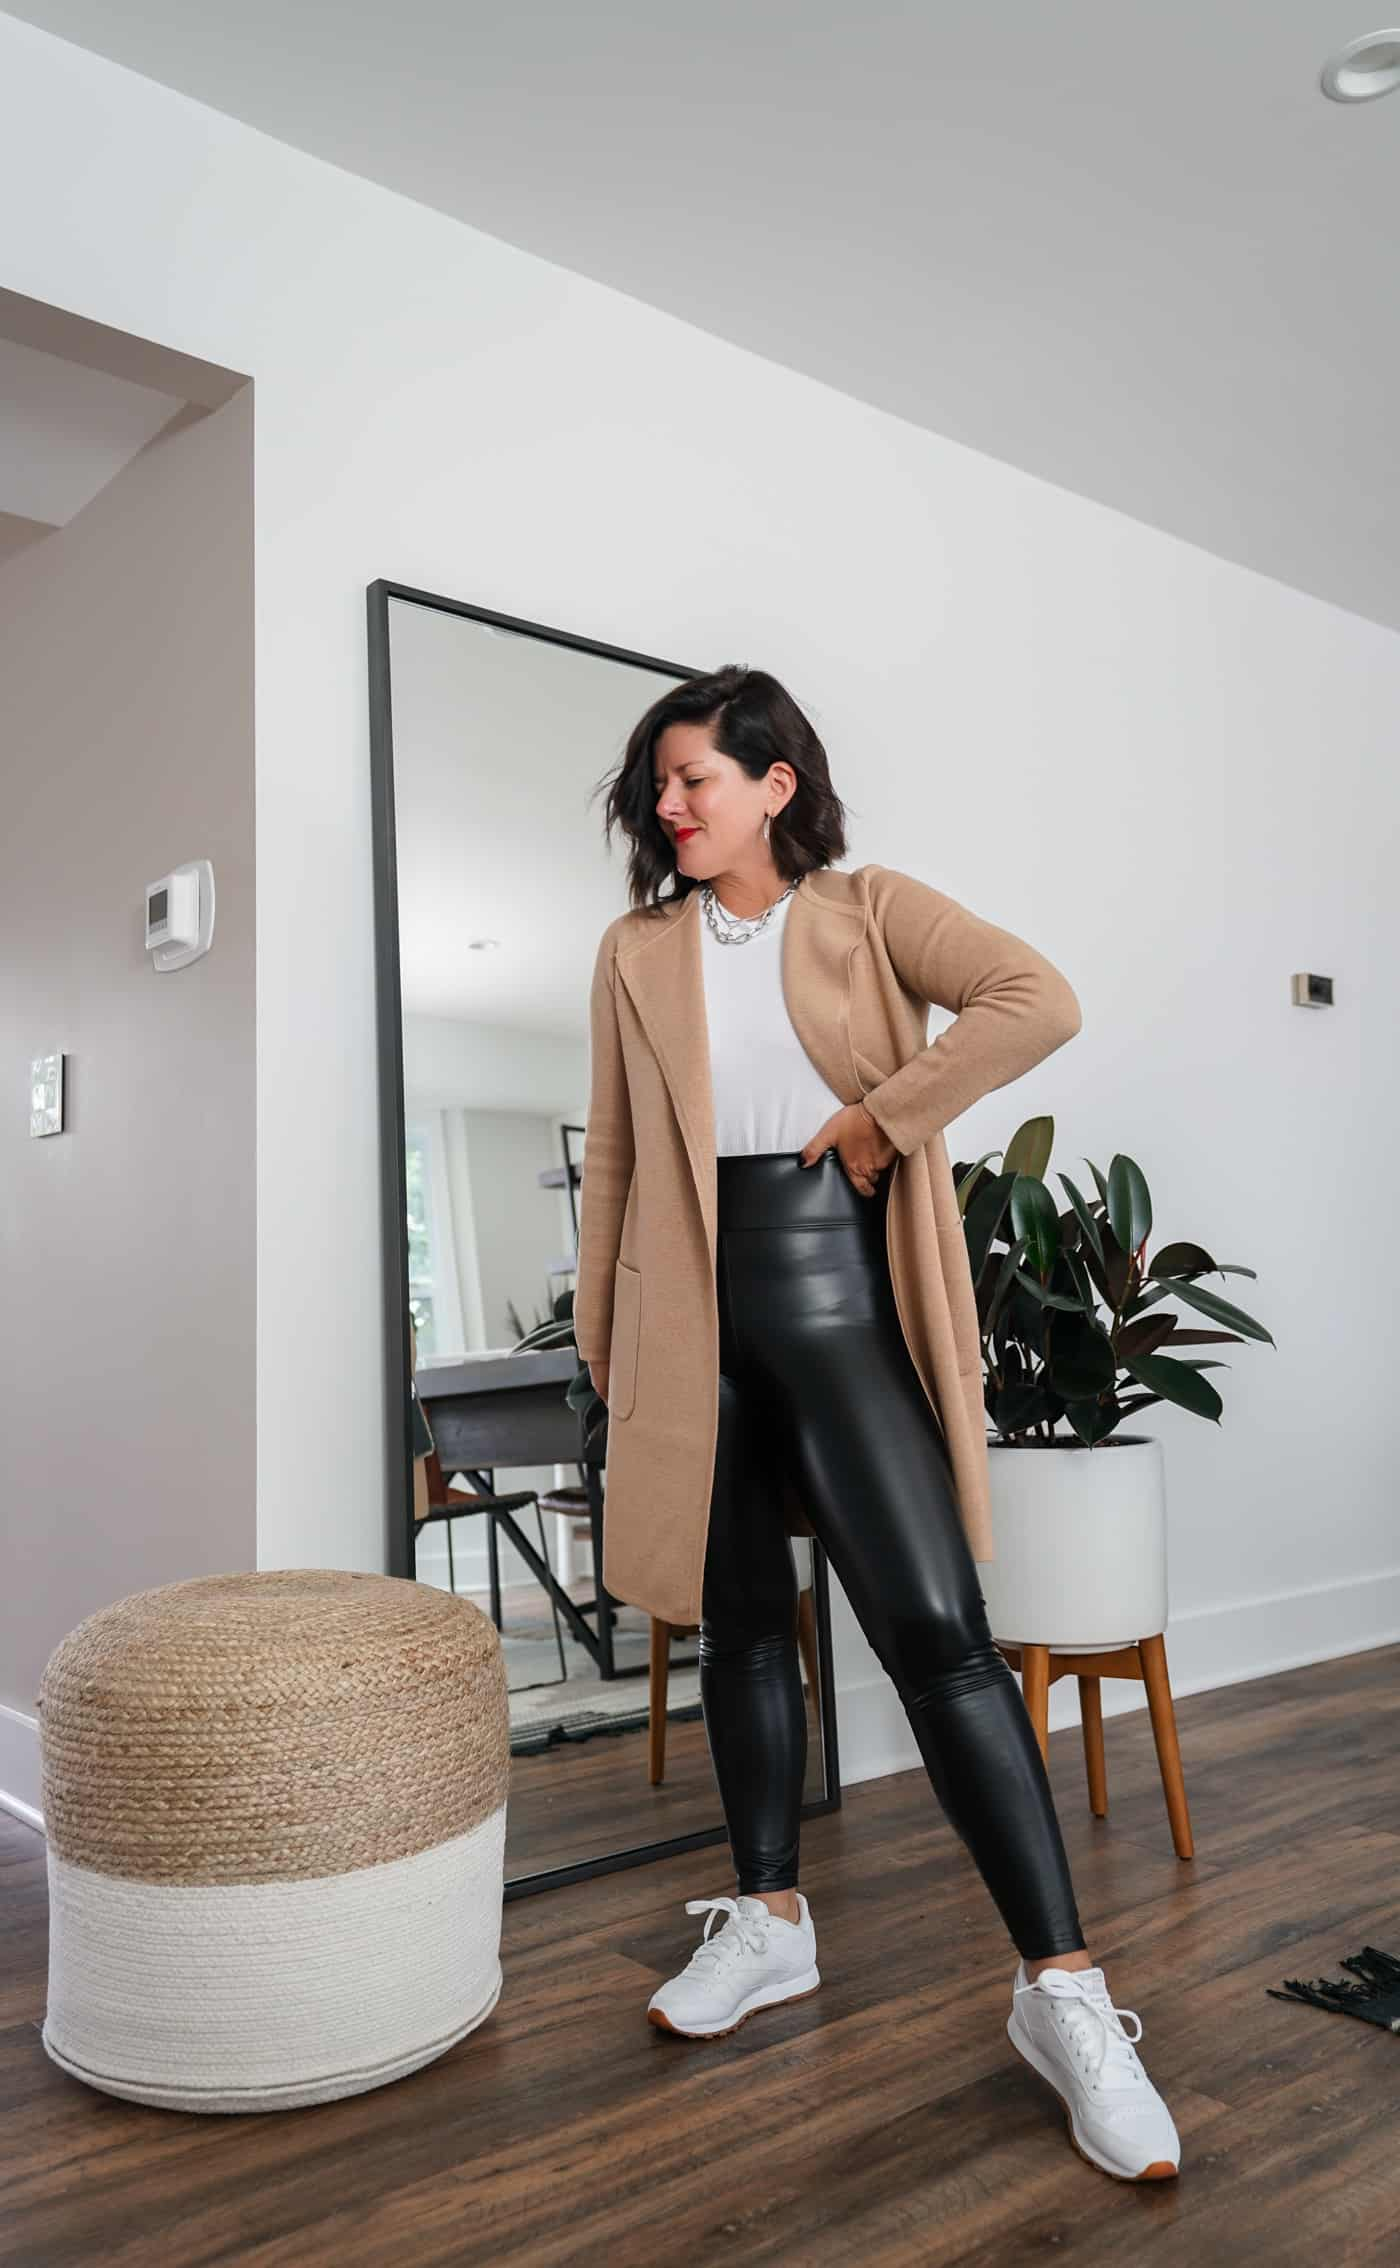 A Lily Love Affair shares how to wear a long cardigan with faux leather leggings and reebok classic sneakers